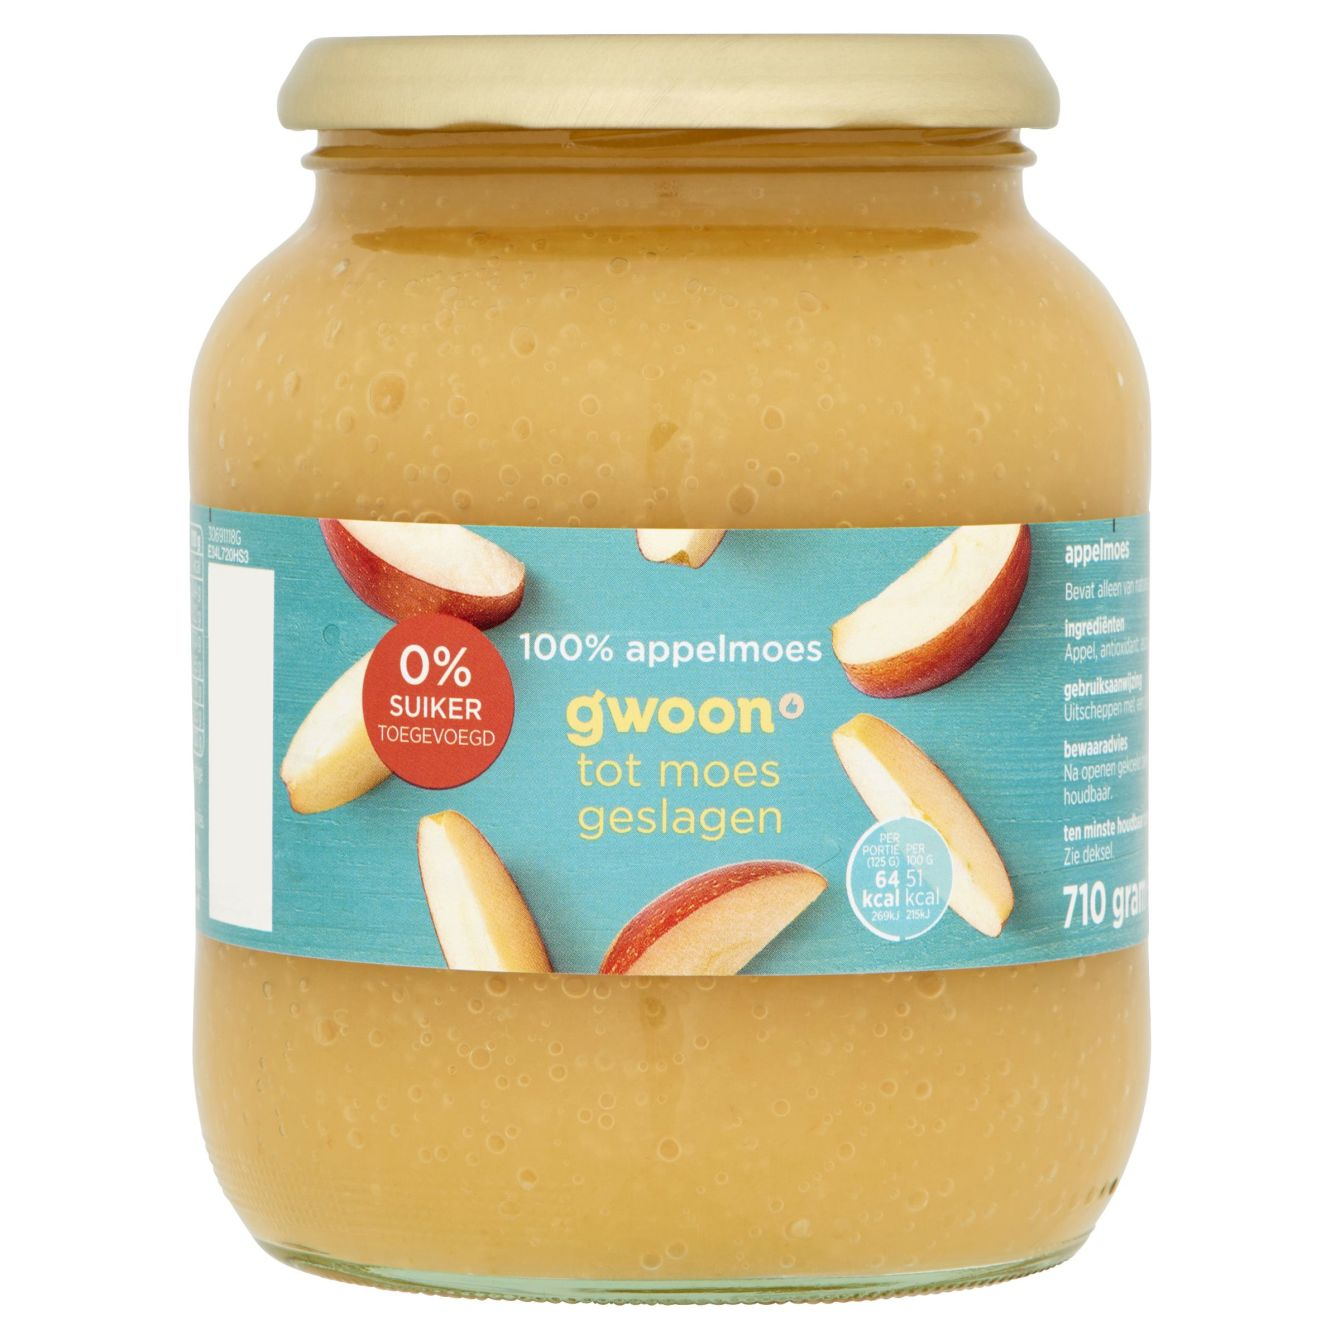 G'woon Appelmoes Extra 0% Toegevoegd Suiker